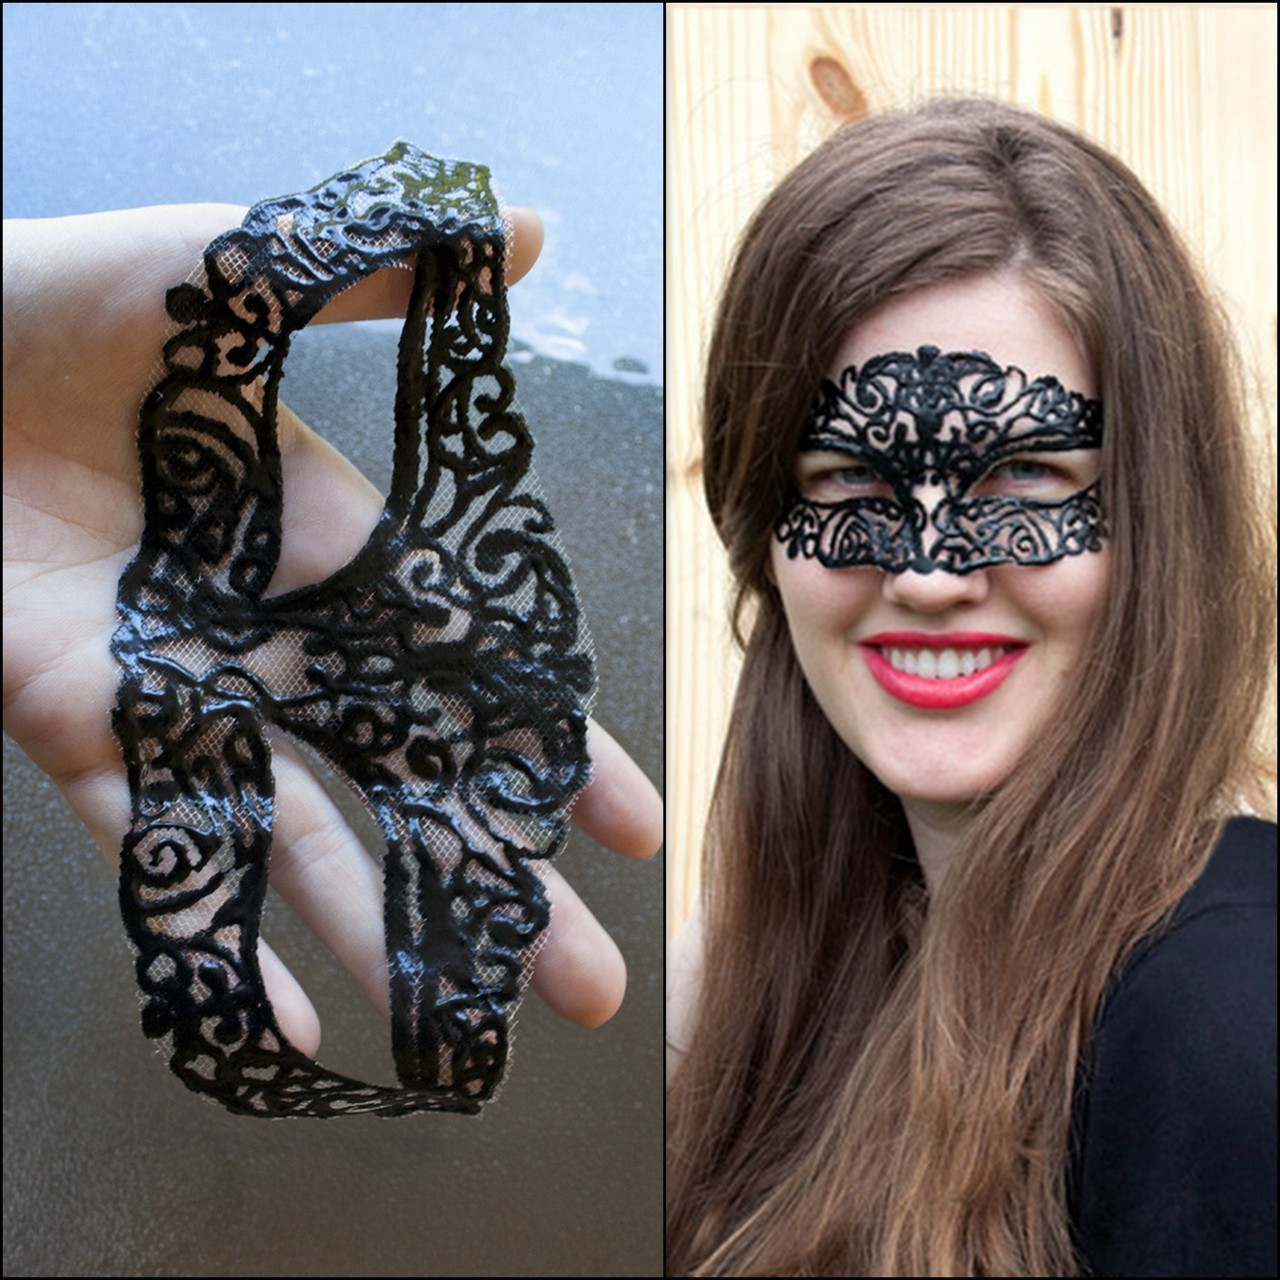 Best ideas about DIY Masquerade Masks . Save or Pin True Blue Me & You DIYs for Creatives • DIY Masquerade Now.